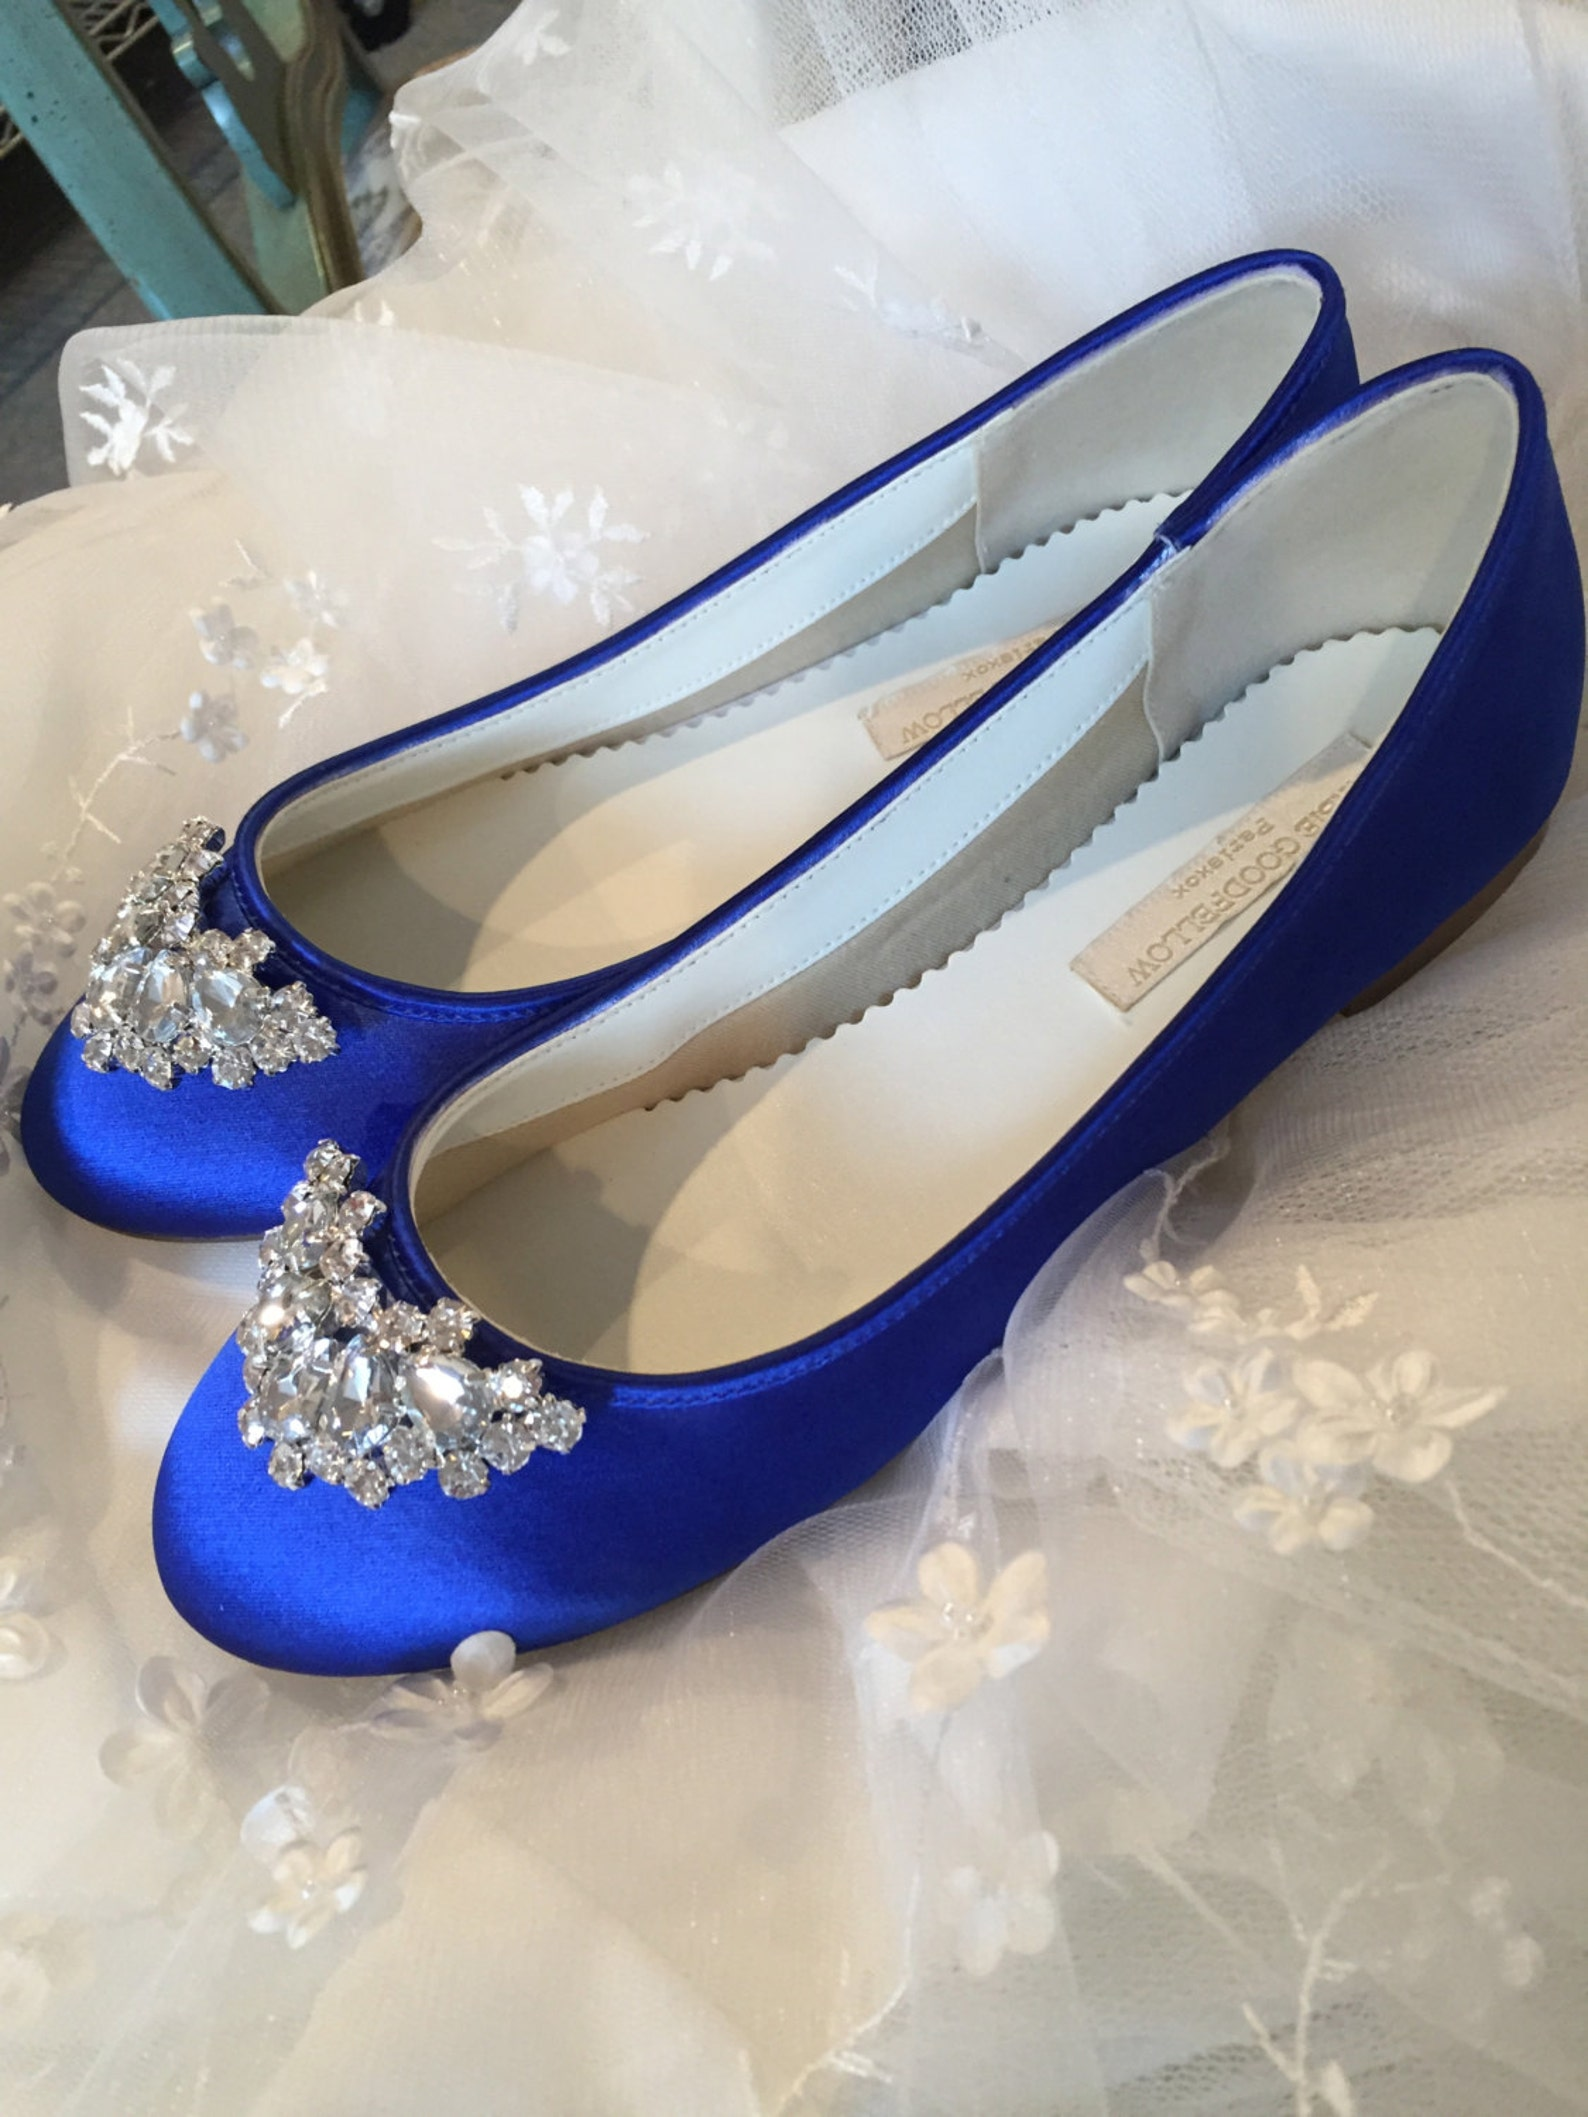 royal blue wedding shoes, ballet flats, closed toe flats, crystals, sapphire blue, blue ladies shoes, comfortable, outdoor weddi